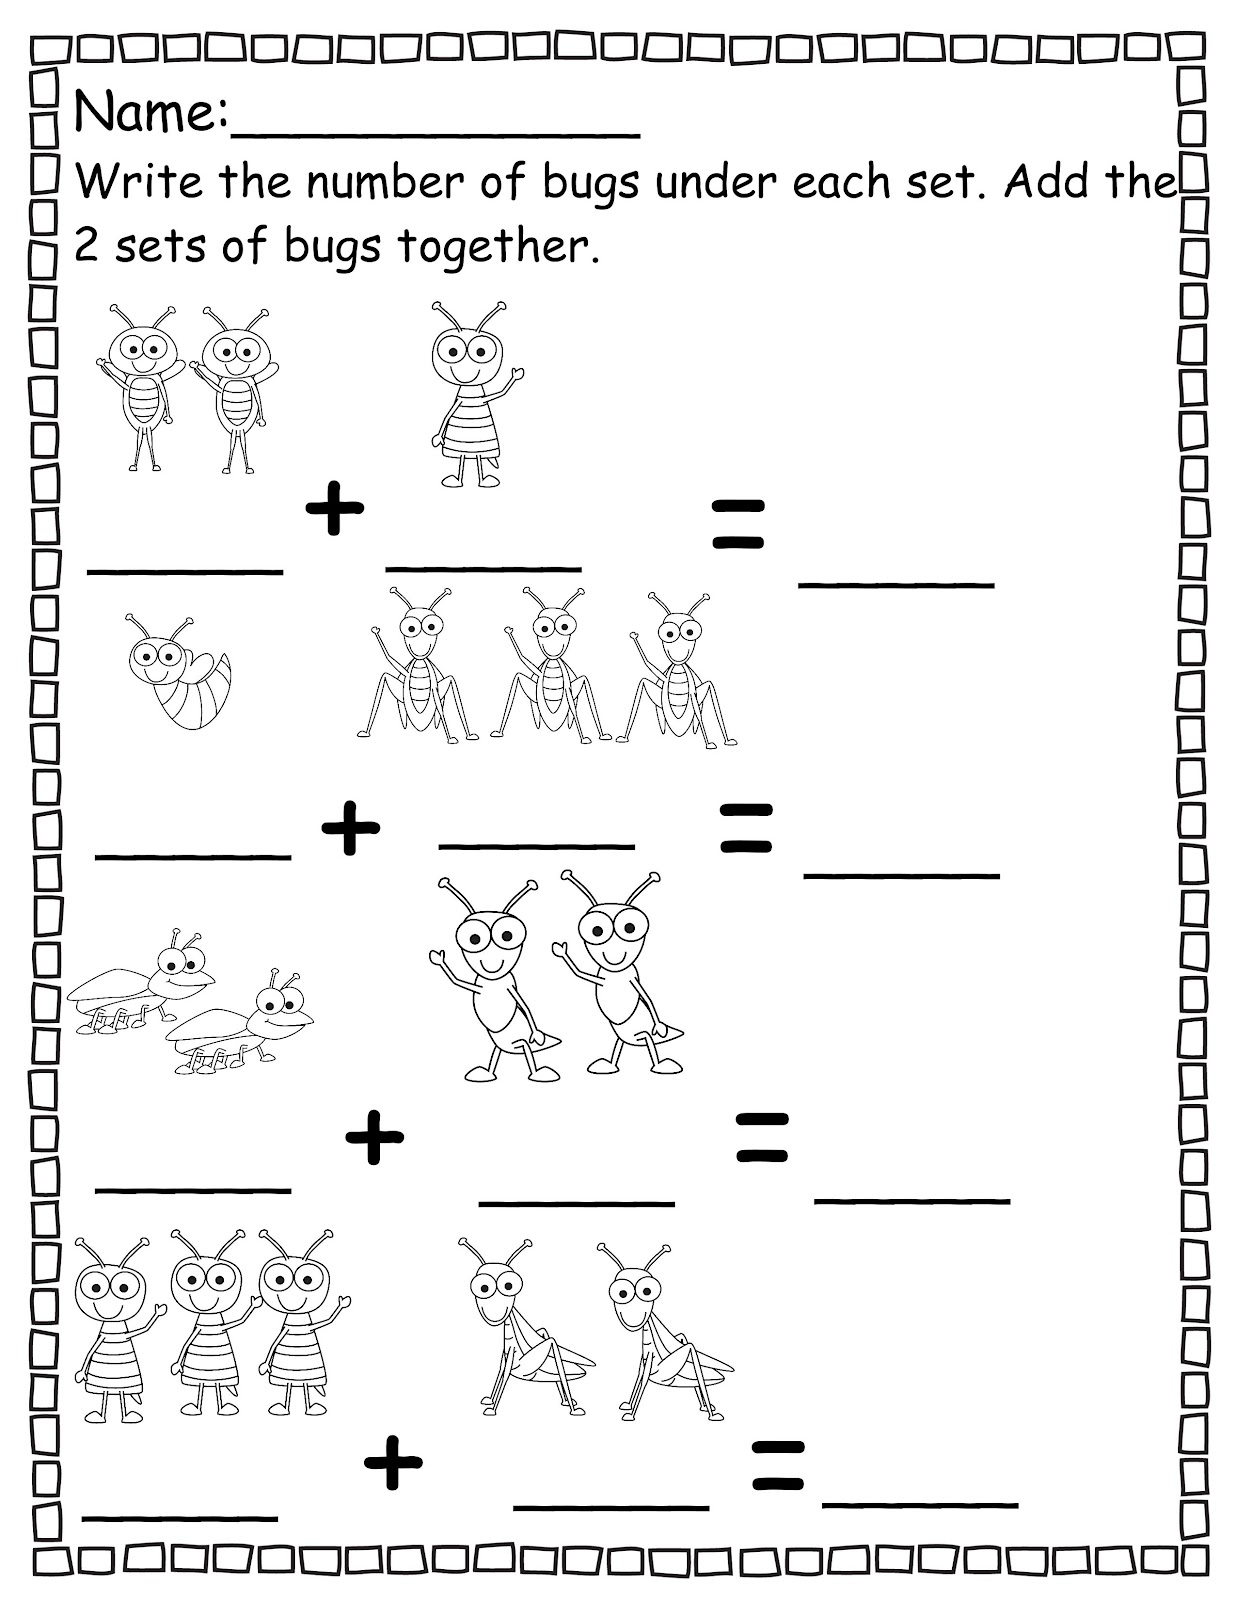 Worksheets Pre K Worksheets Free Printable pre k worksheets free printable